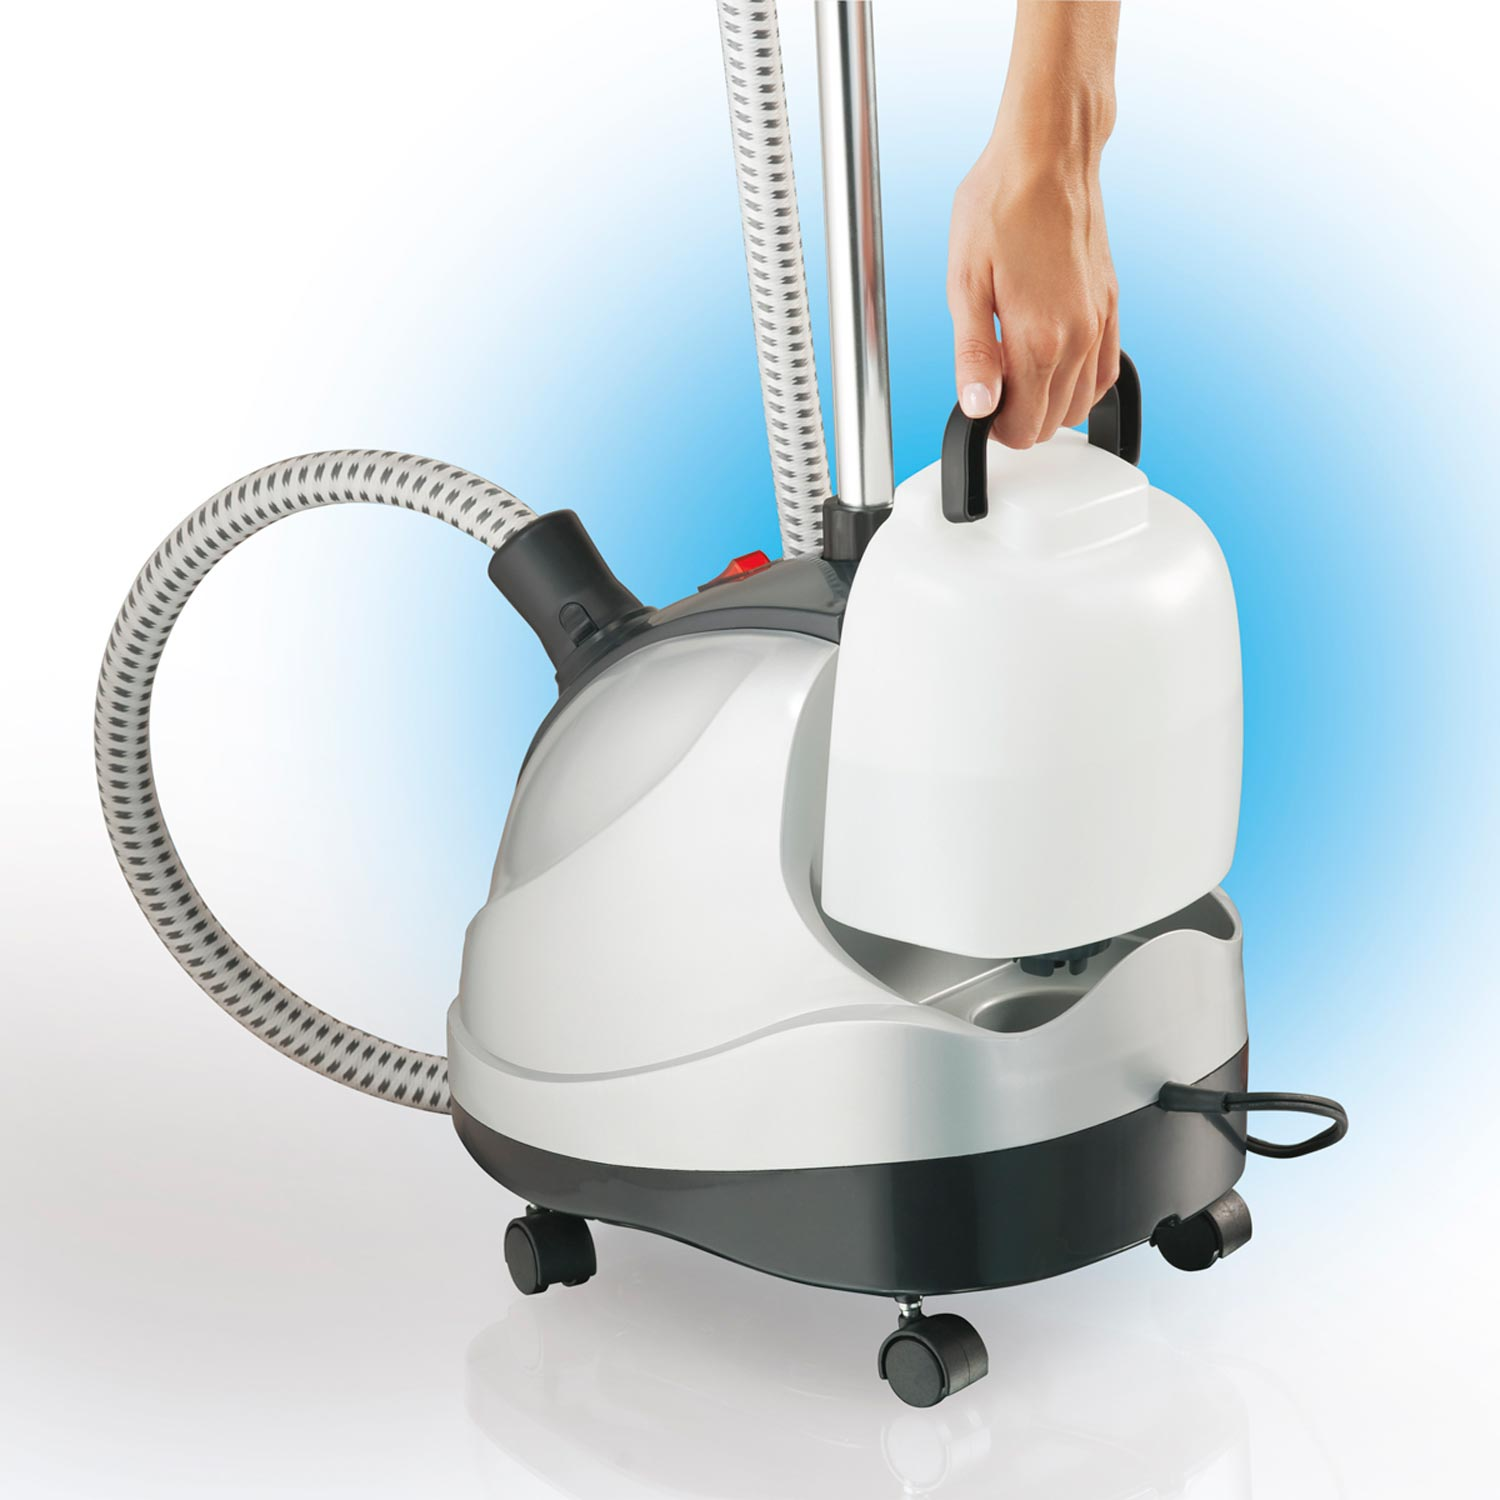 Removable water tank fills up at the sink for 90 minutes of steaming power with the Full-size Garment Steamer.